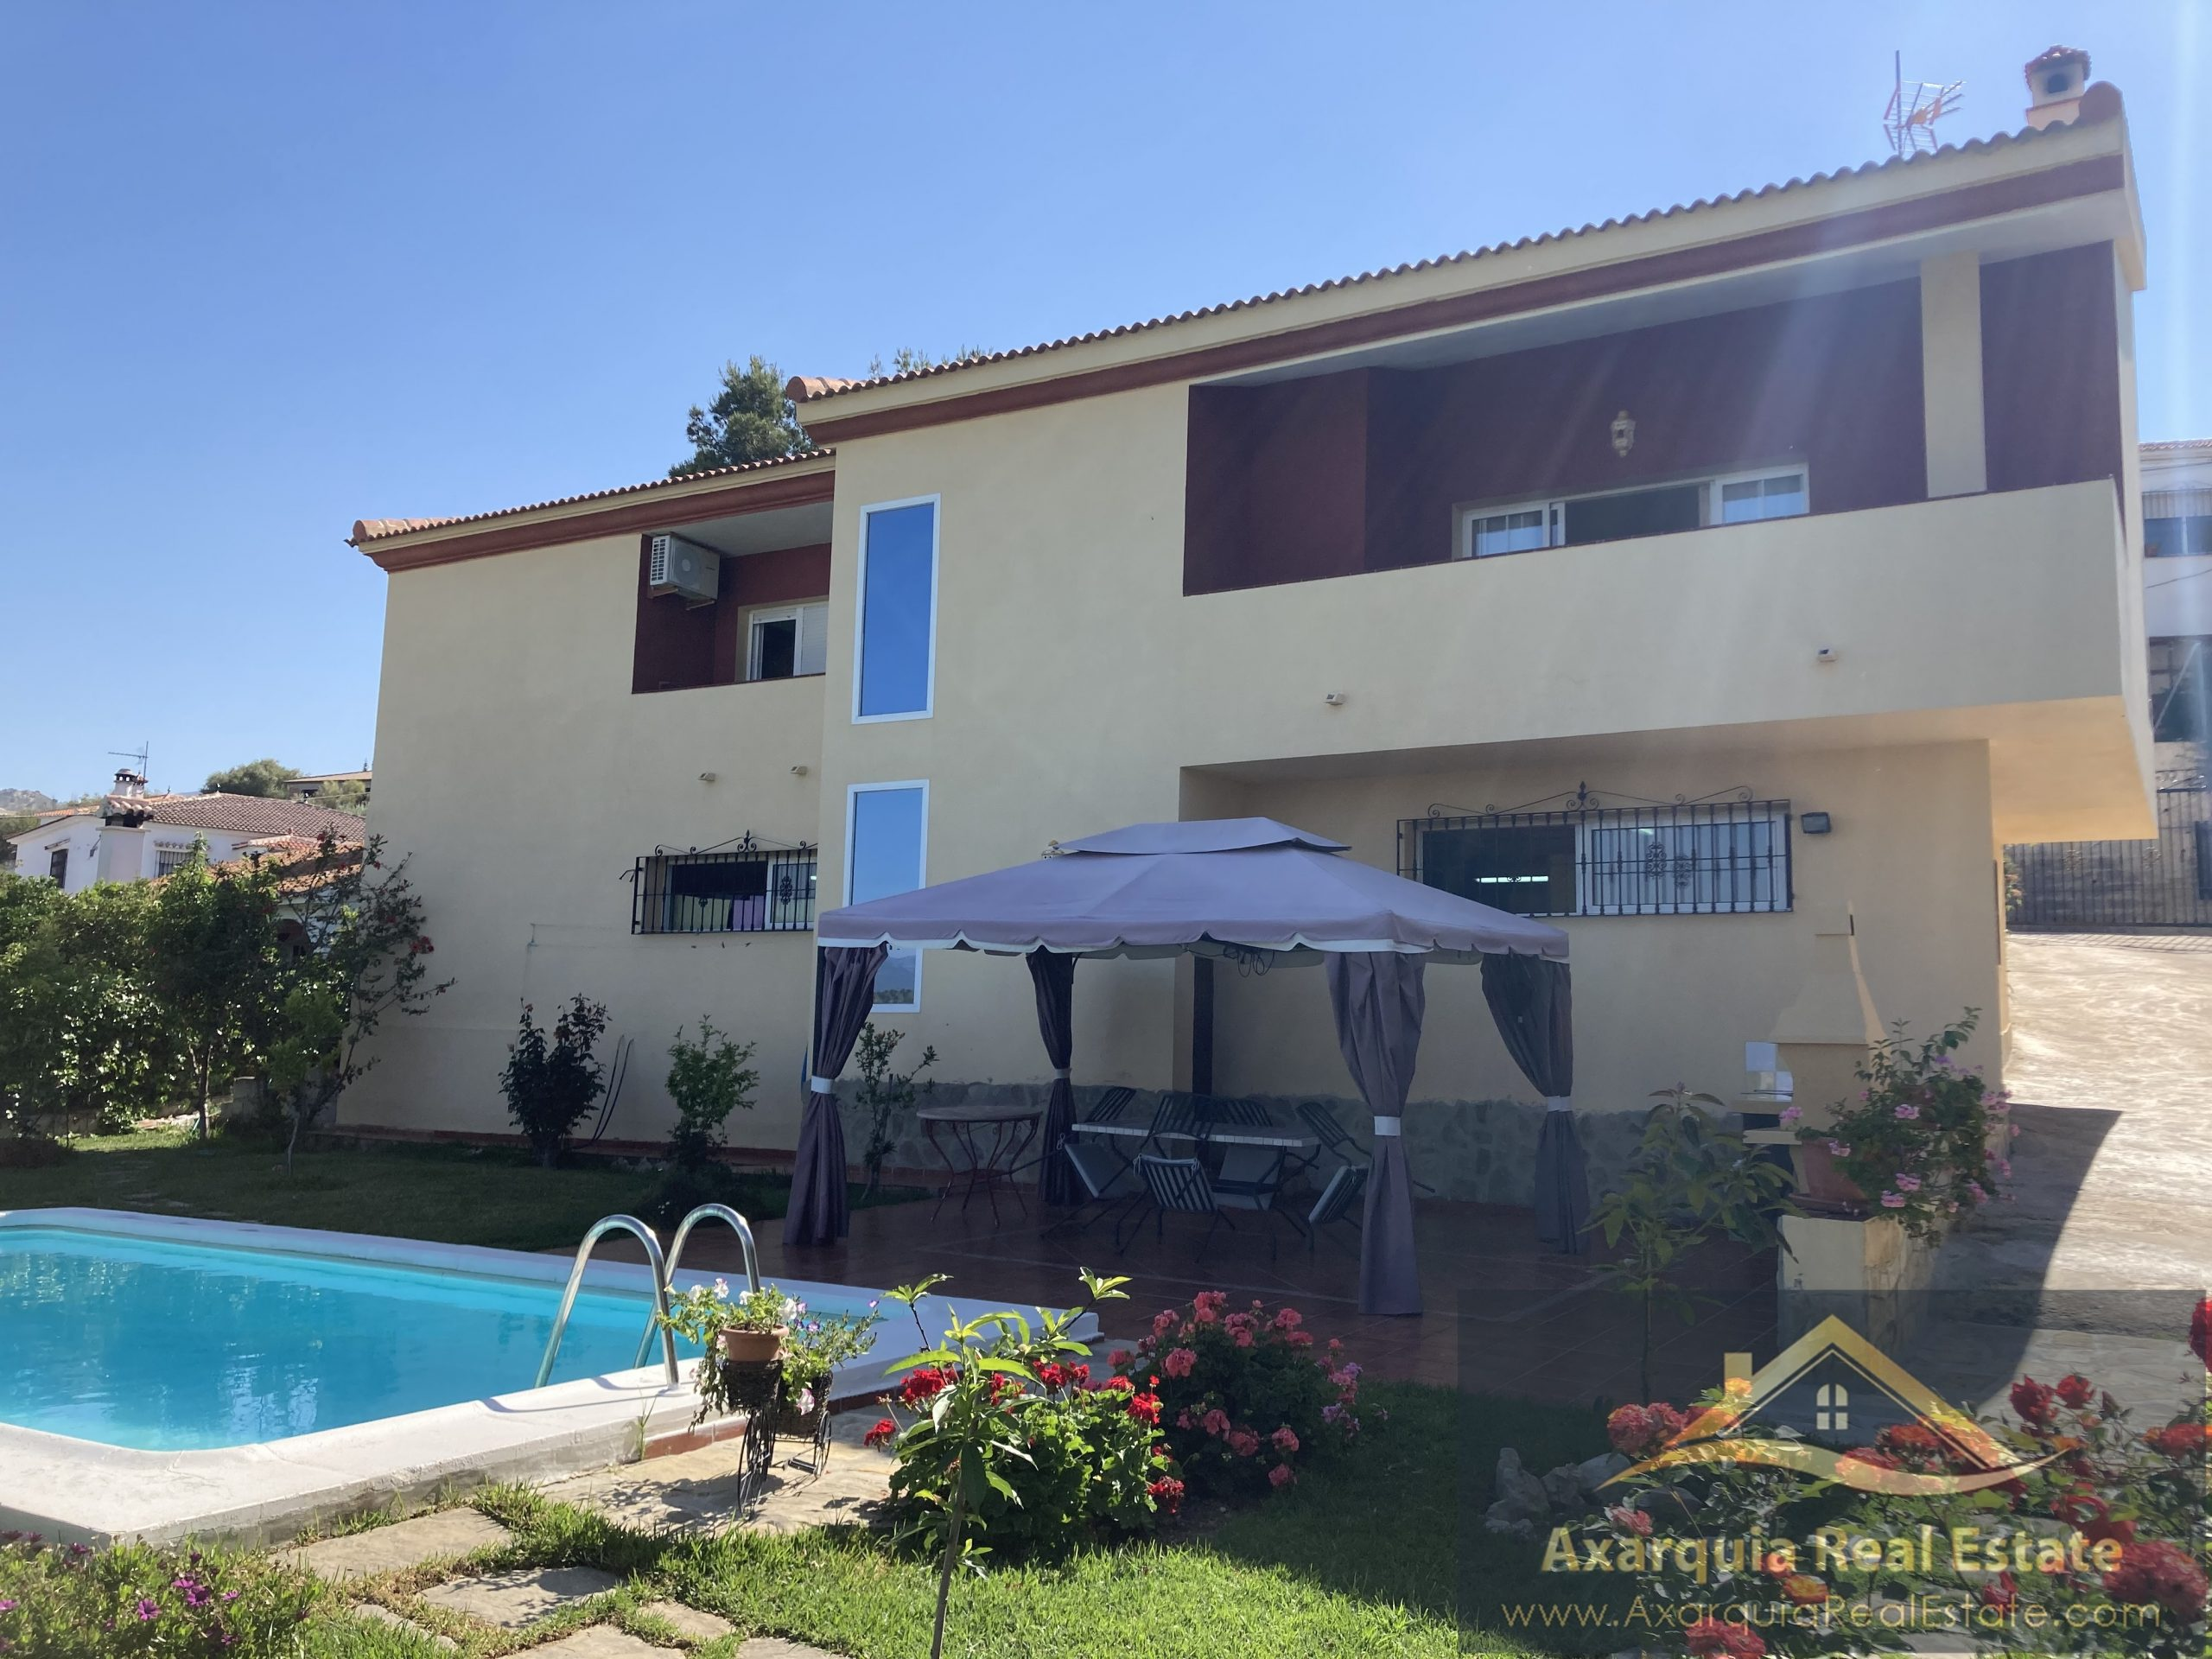 Villa in La Viñuela with 3 bedrooms, large underbuild, swimming pool and lovely views.